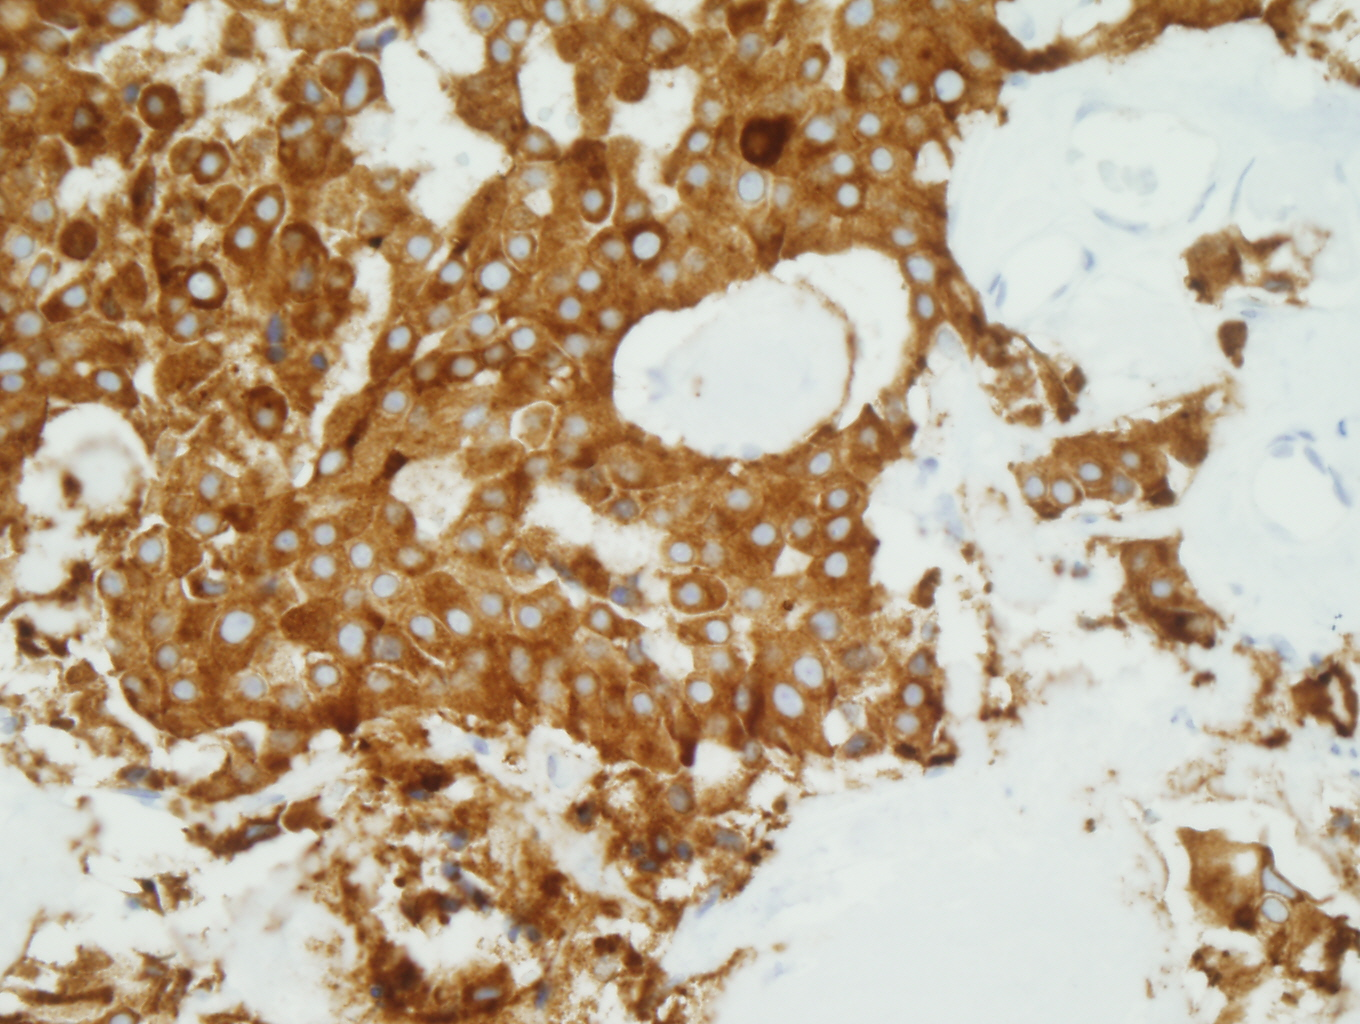 COTM August 2010 Immunohistochemical stains: Figure 2 of 2